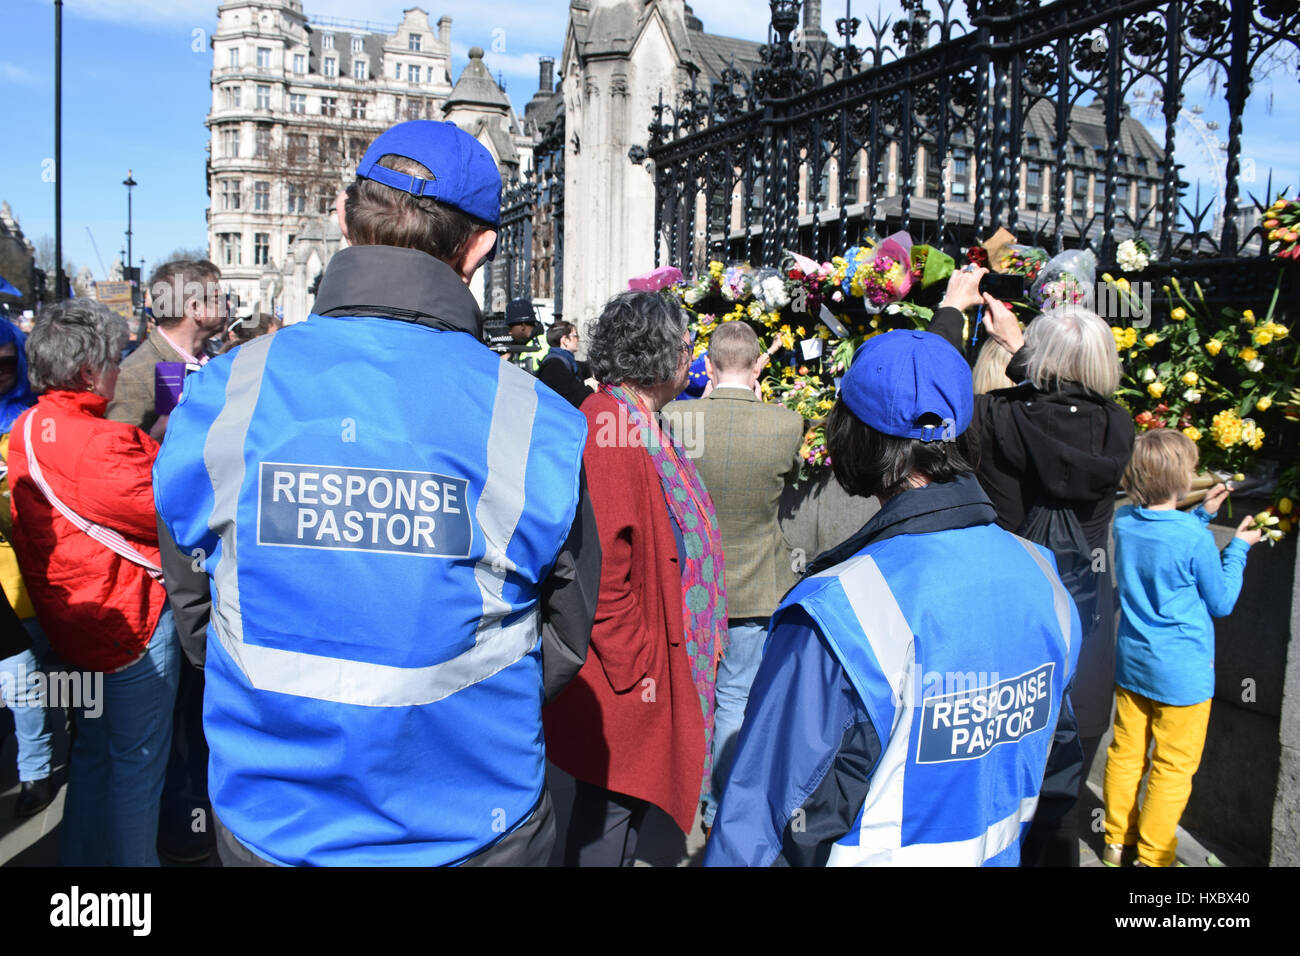 Response pastors & floral tributes outside Parliament for the victims of the terrorist attack on 22 March 2017. - Stock Image